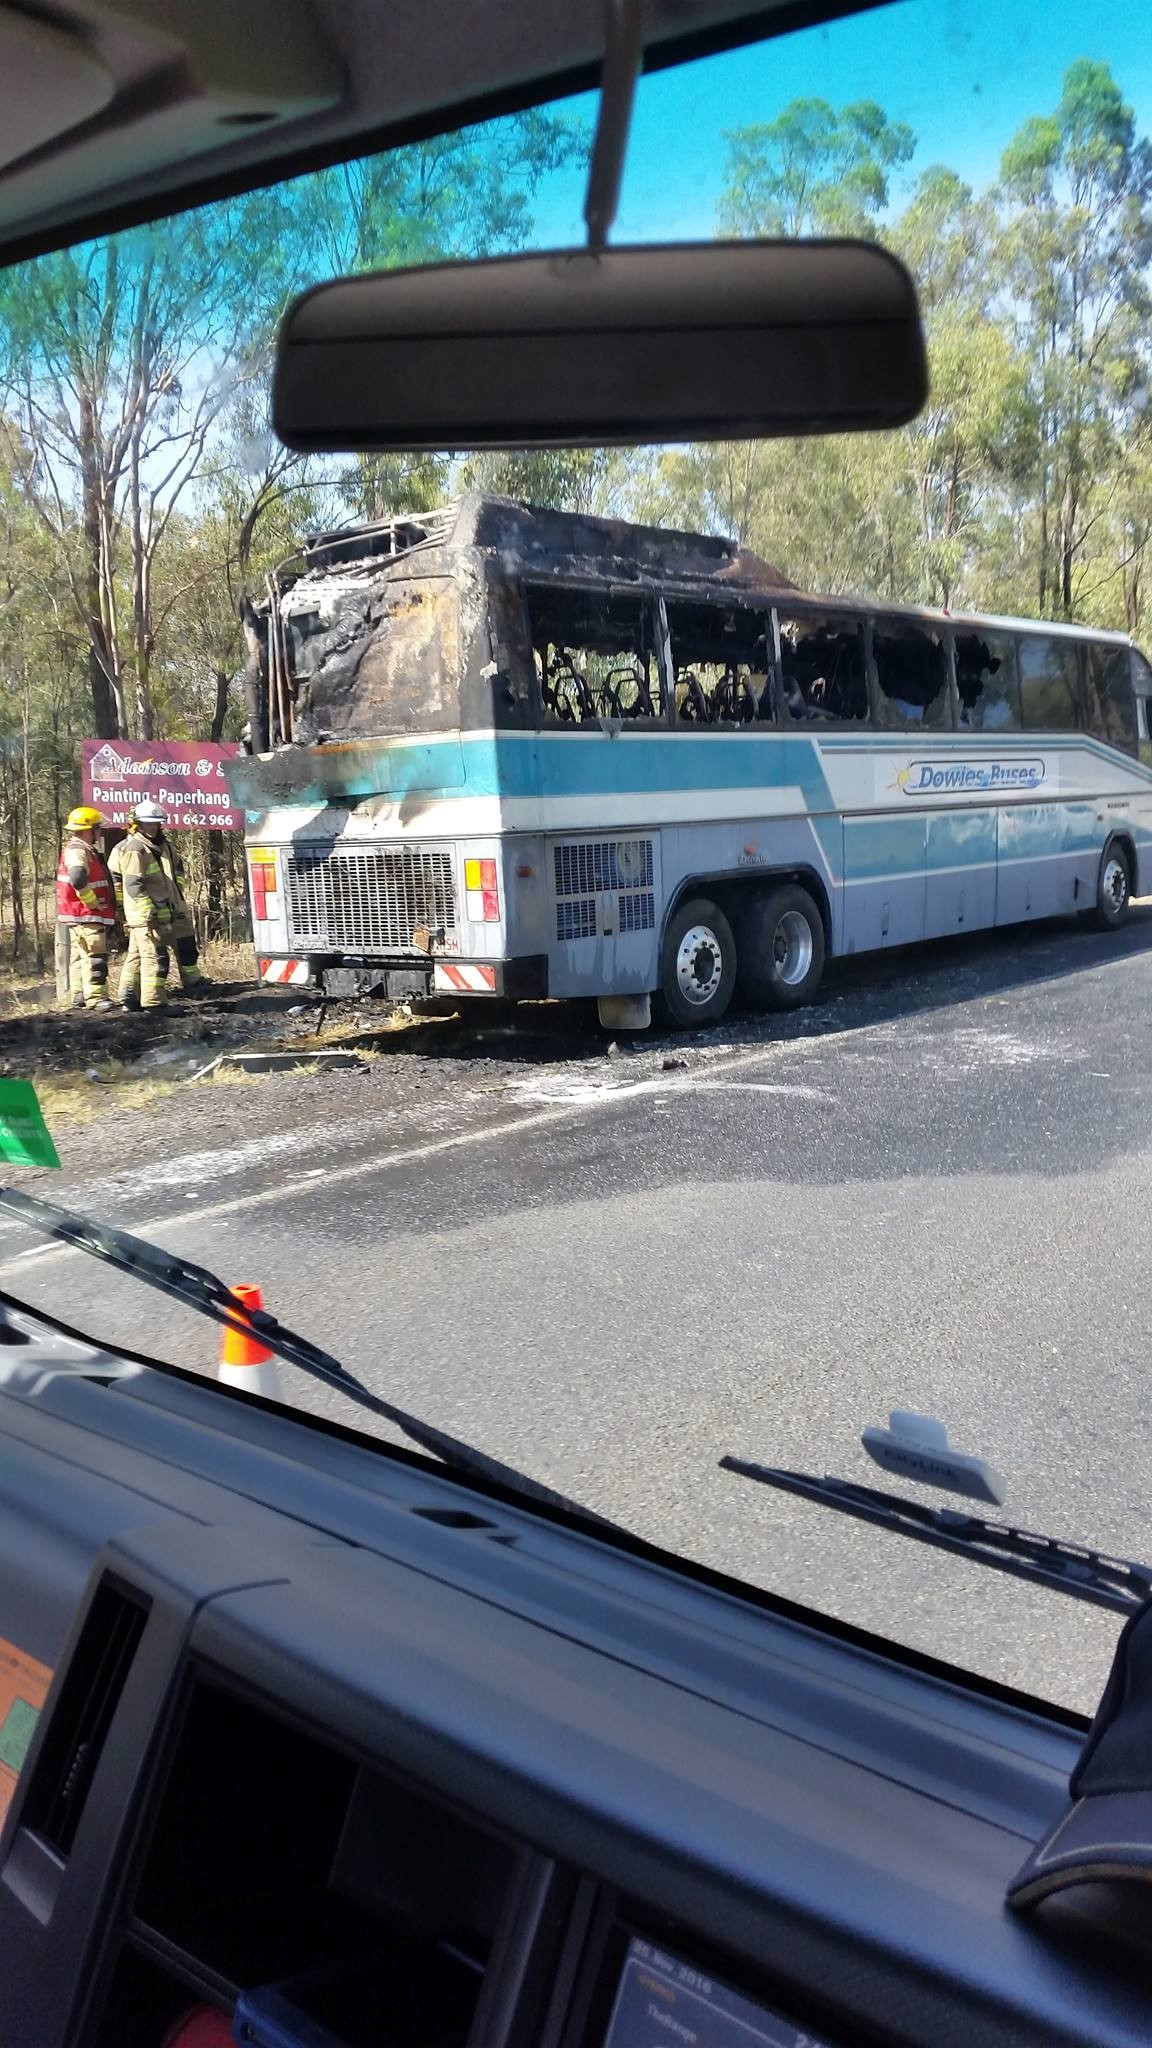 The bus after the fire was put out. Photo: Elisha Schulz.